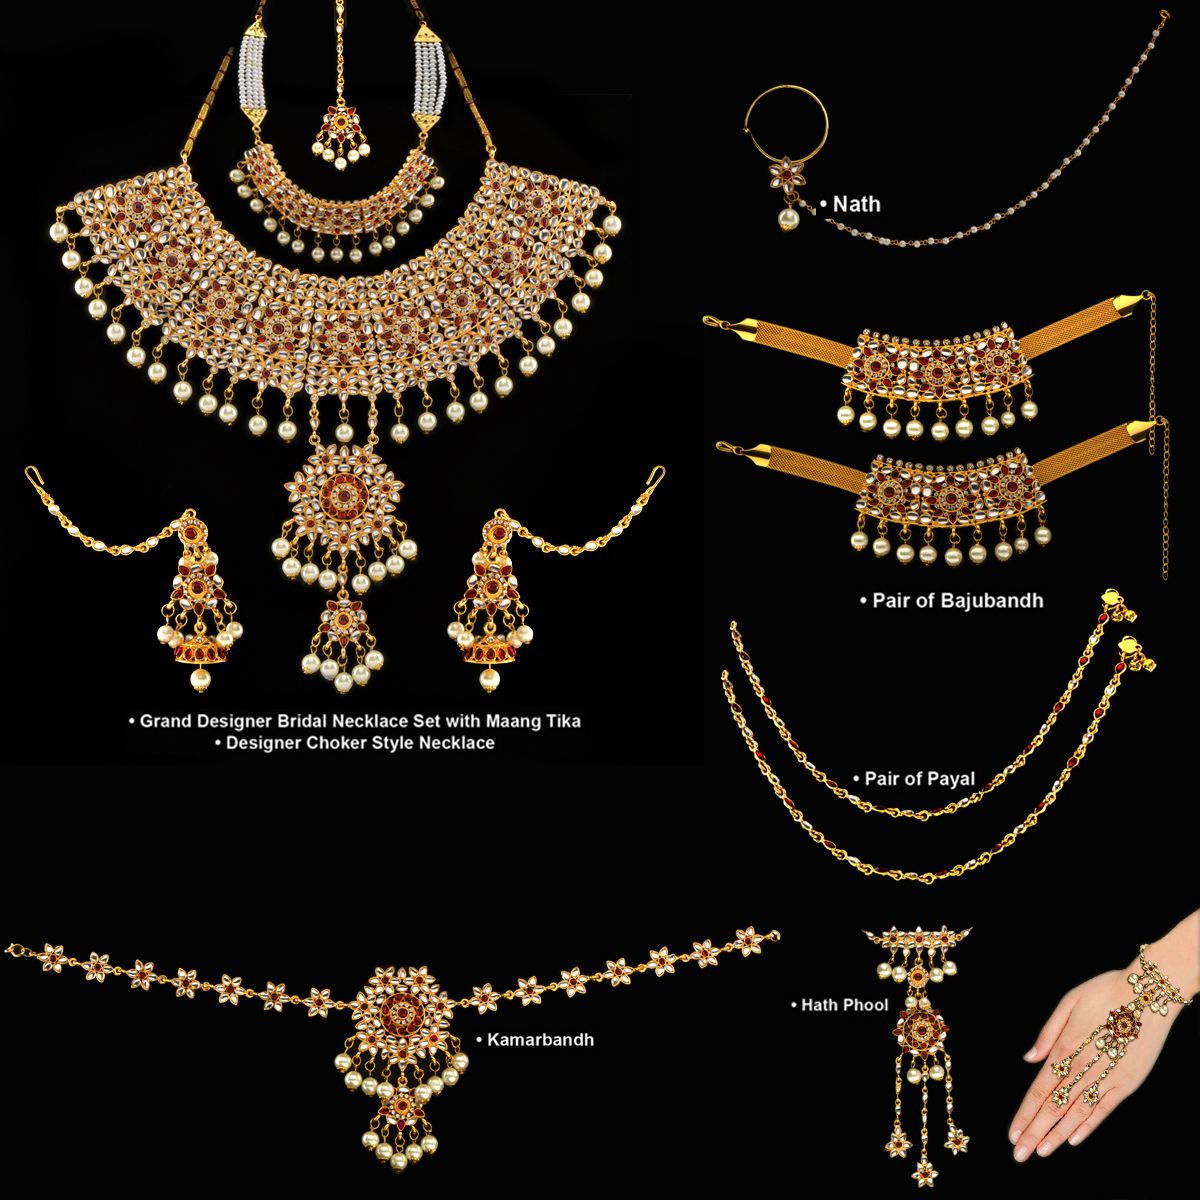 Buy Complete Bridal Jewellery Collection Online at Best Price in ...